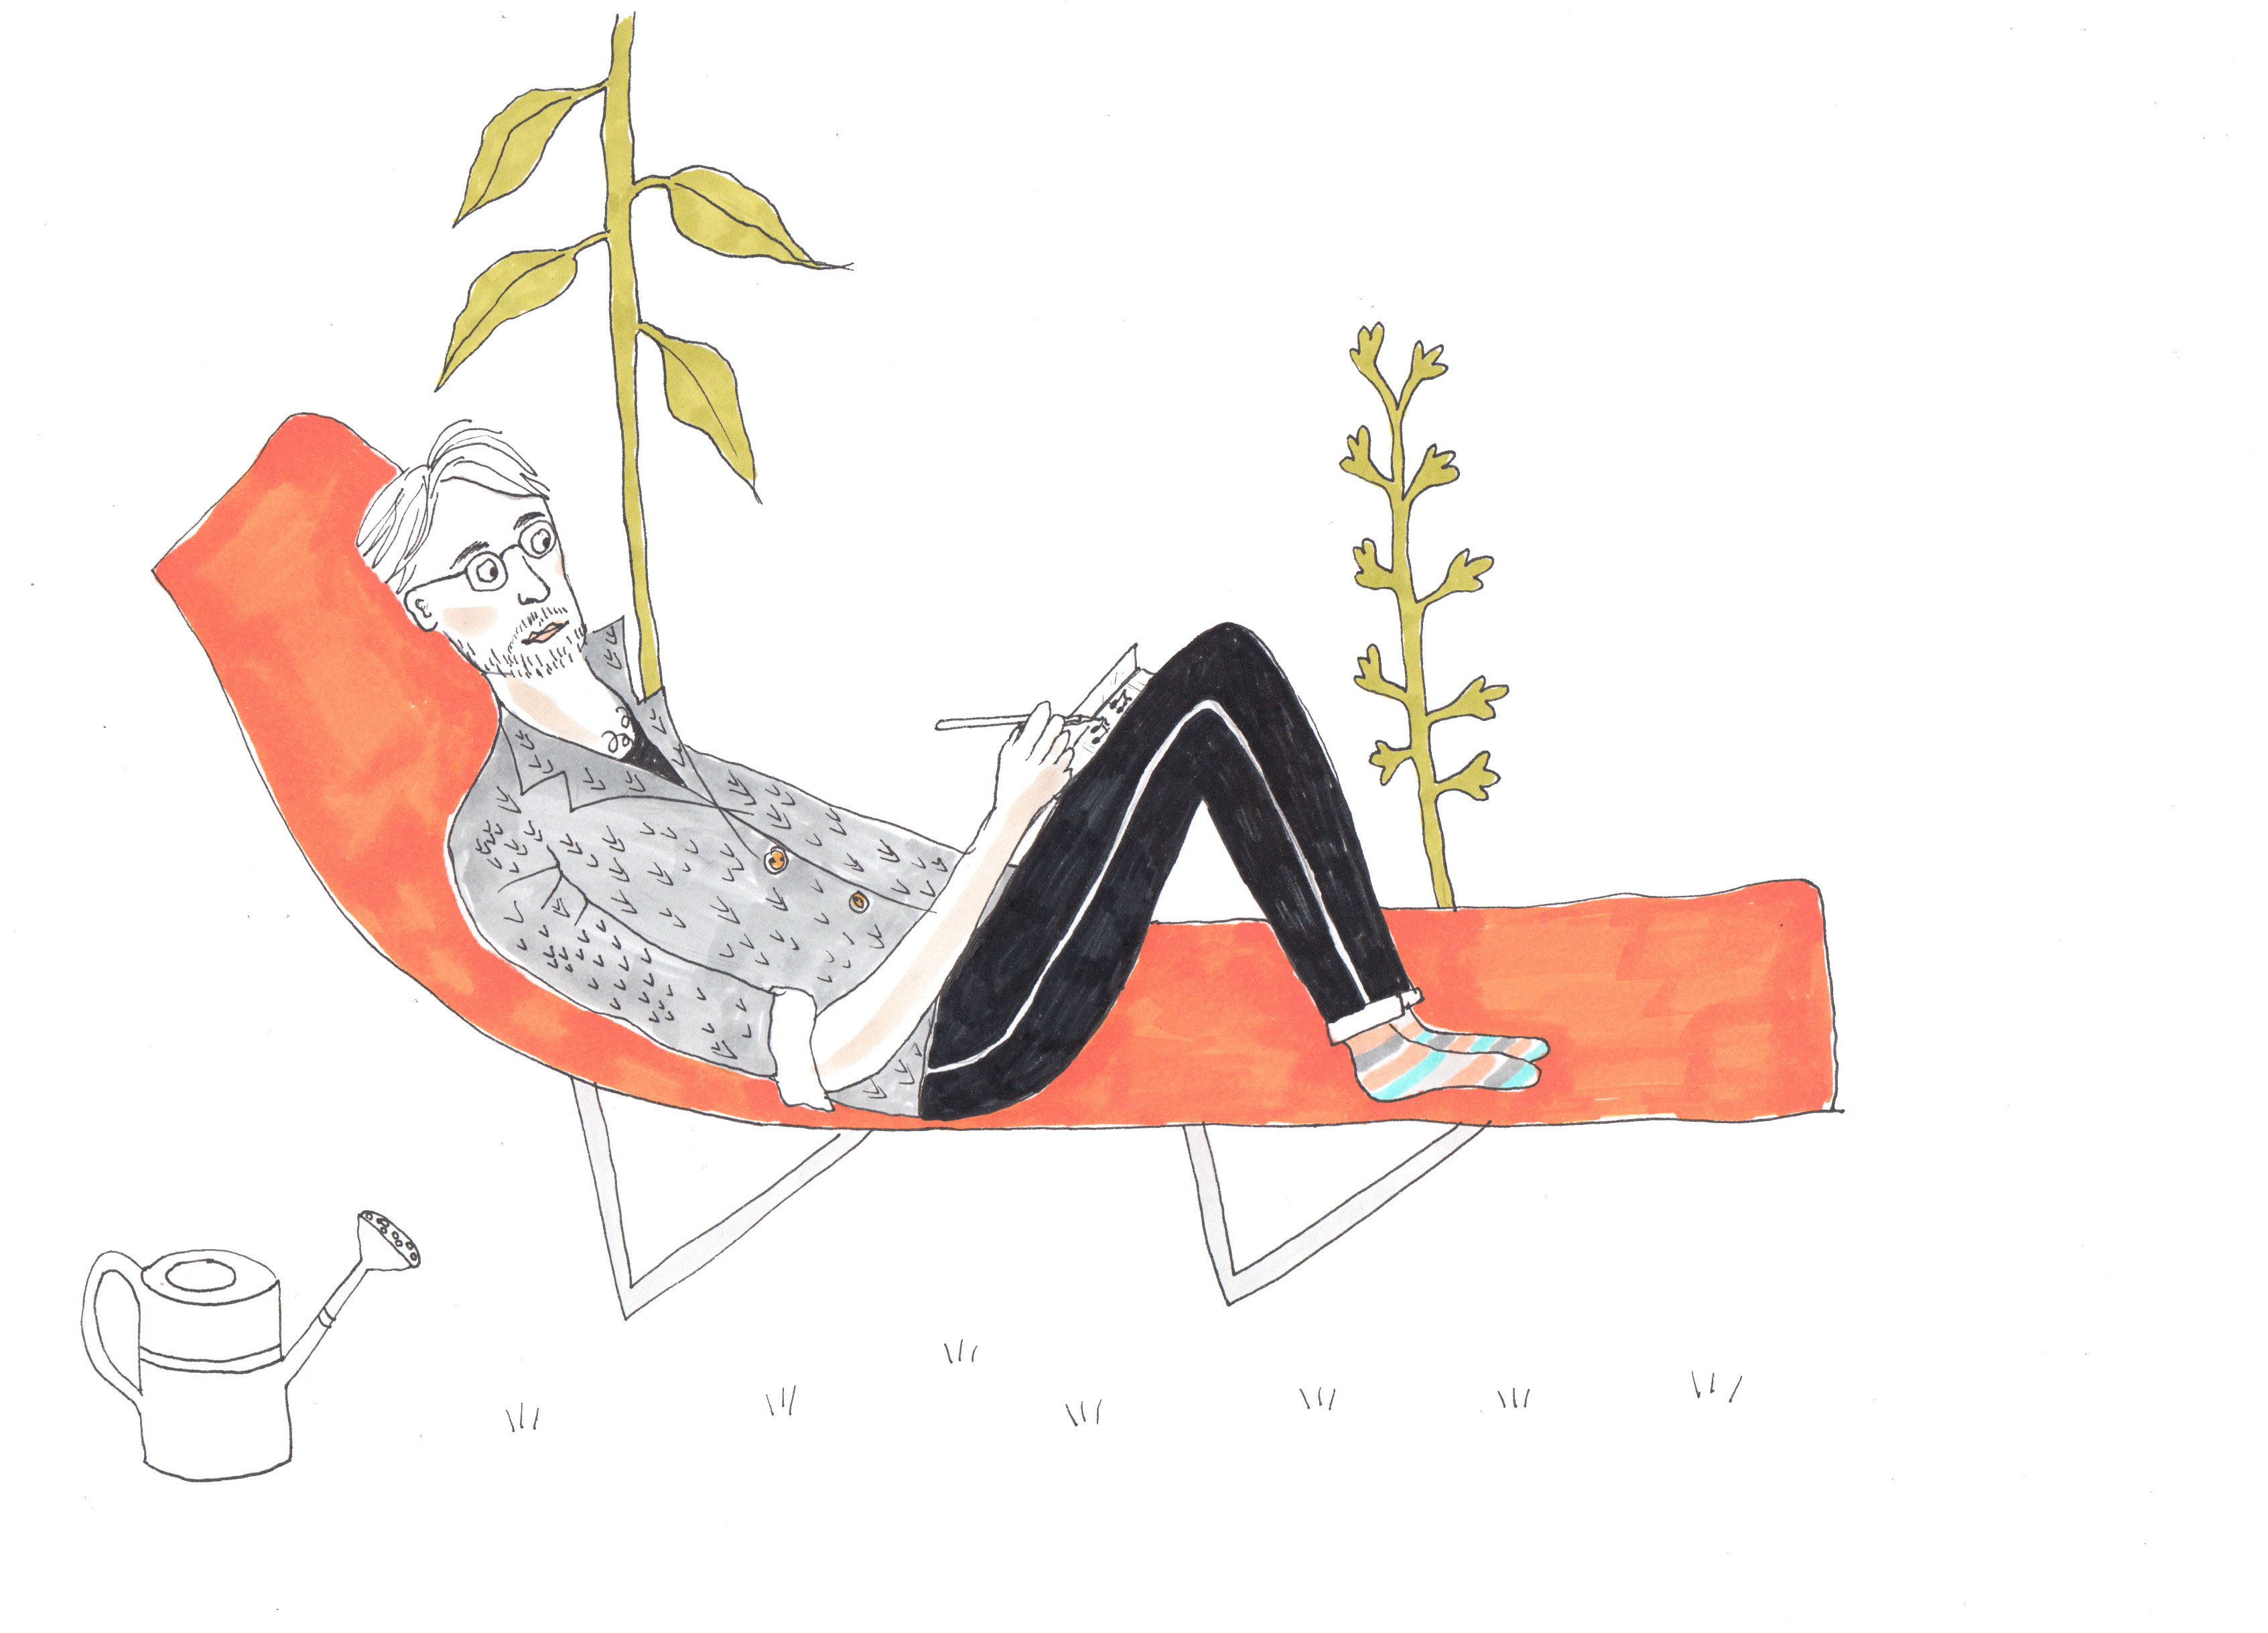 Illustration by Sophie Swindells